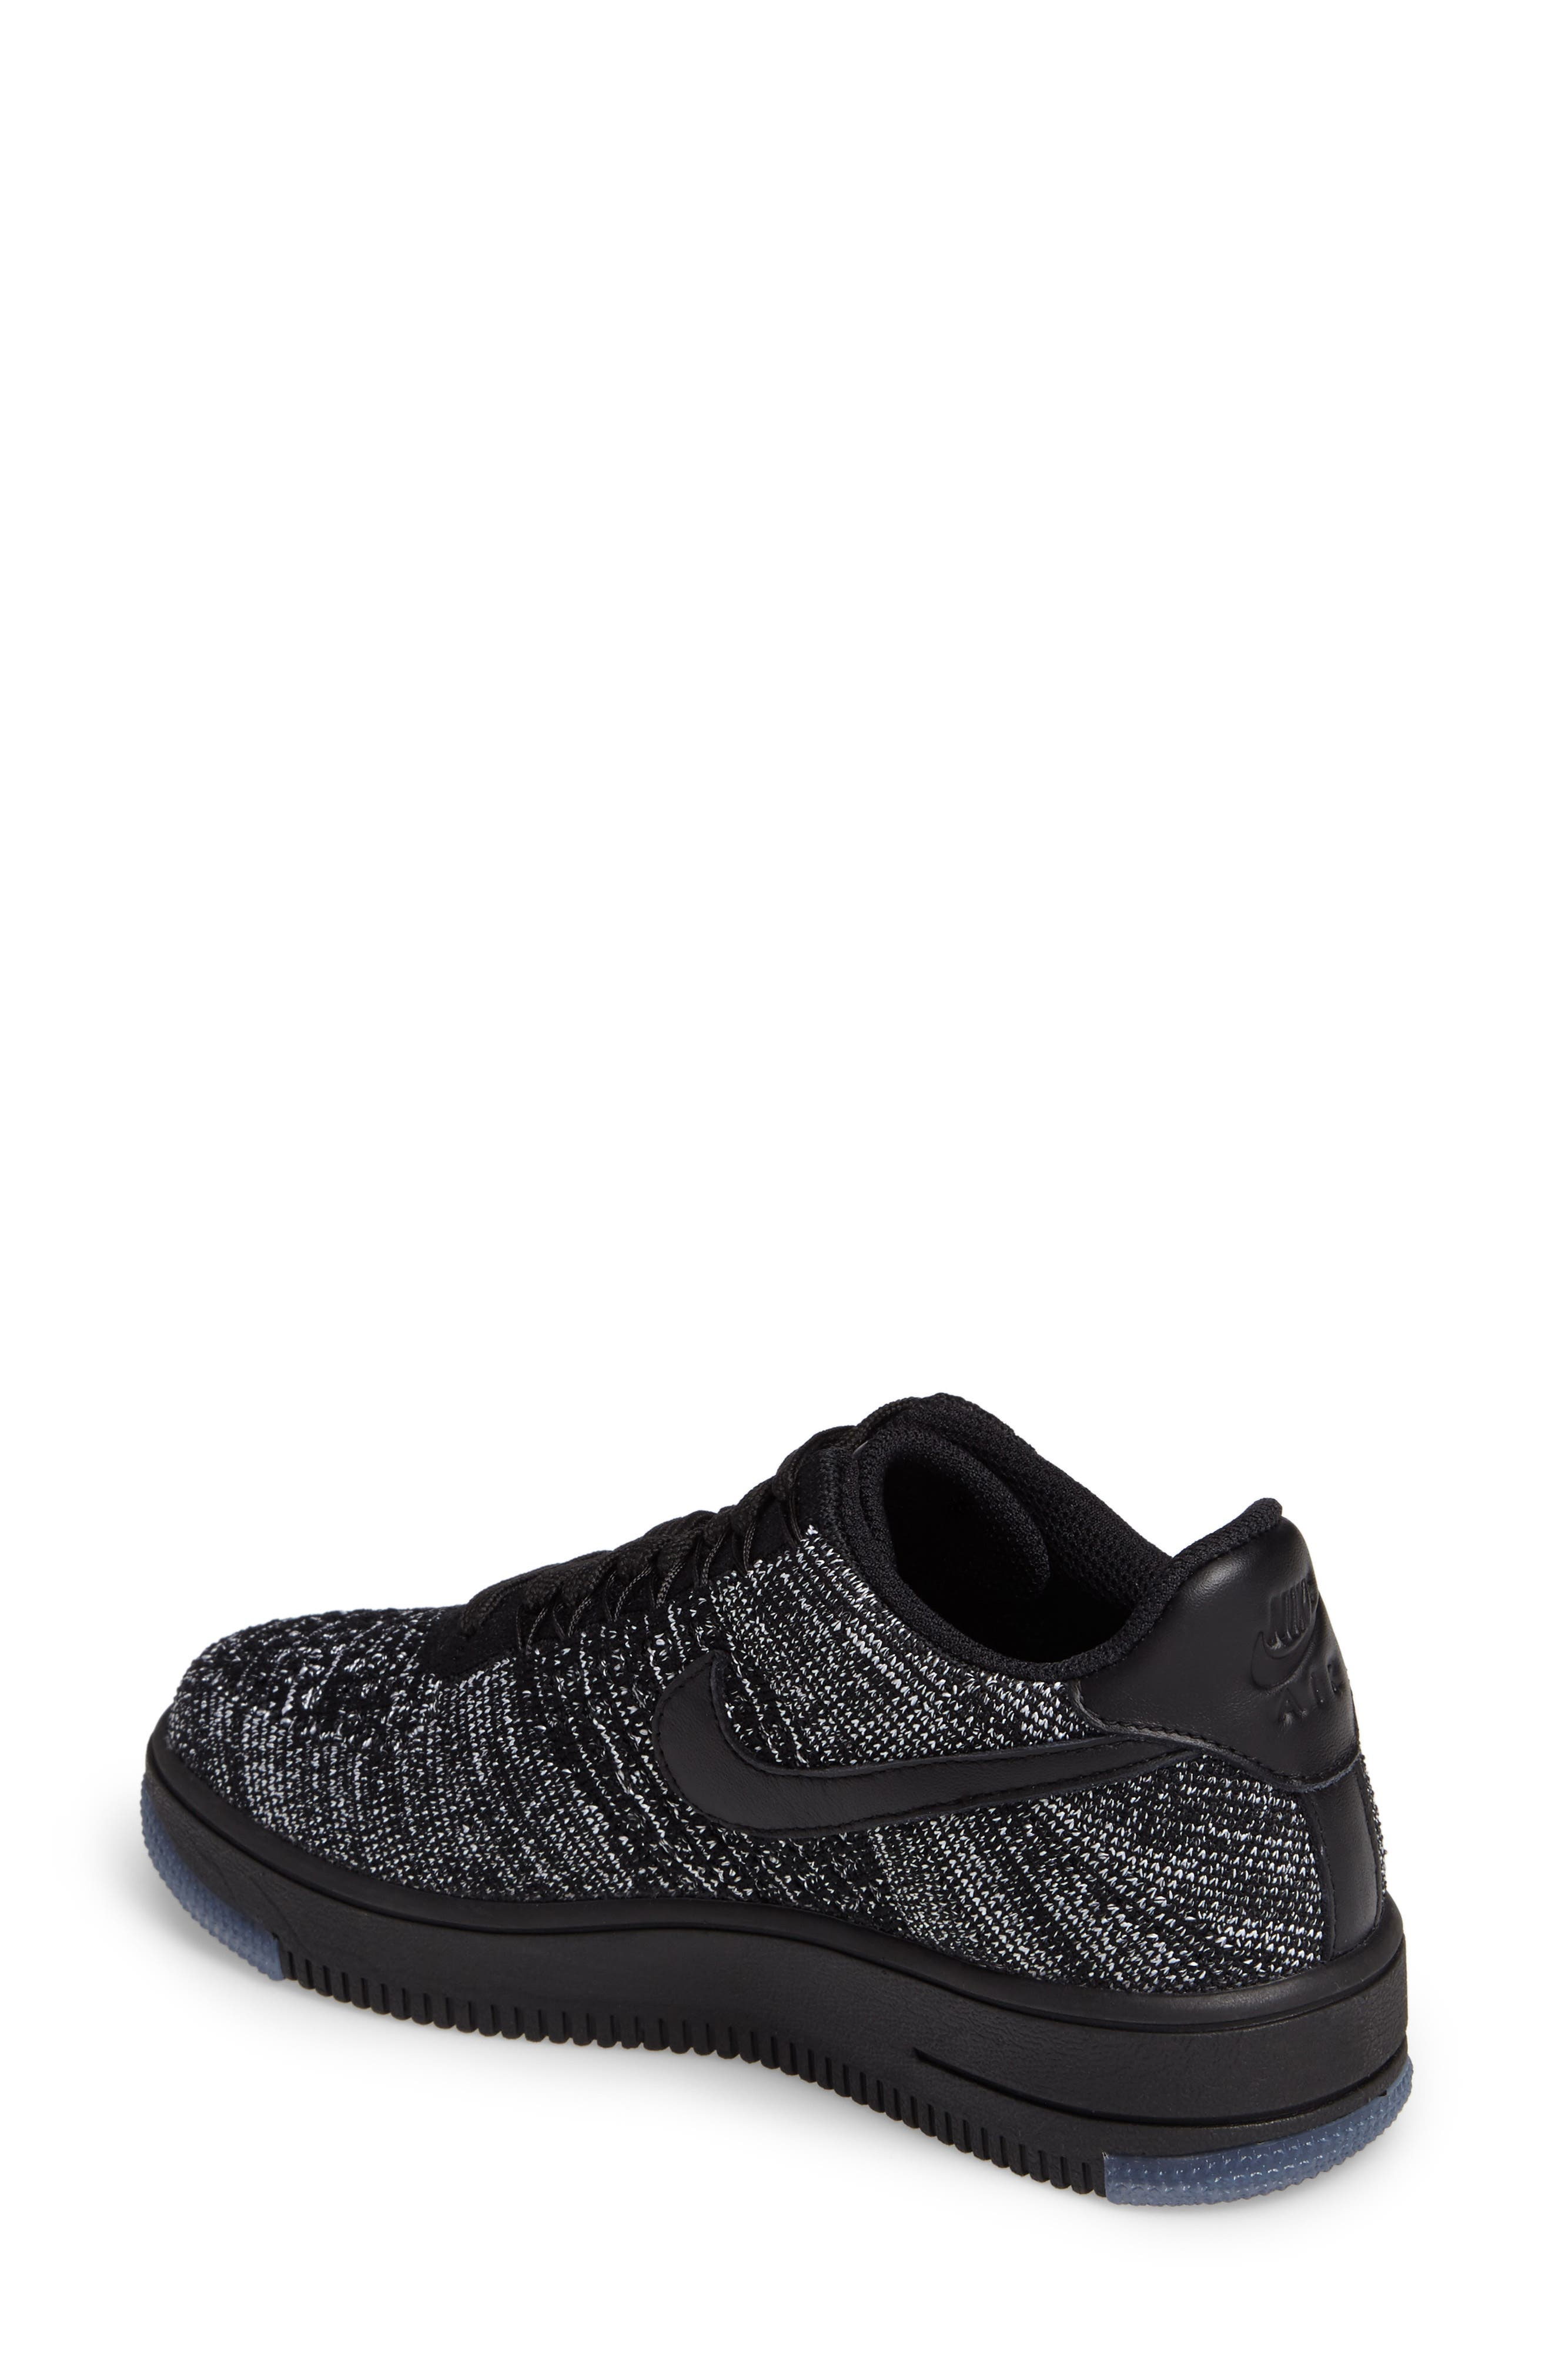 'Air Force 1 Flyknit Low' Sneaker,                             Alternate thumbnail 9, color,